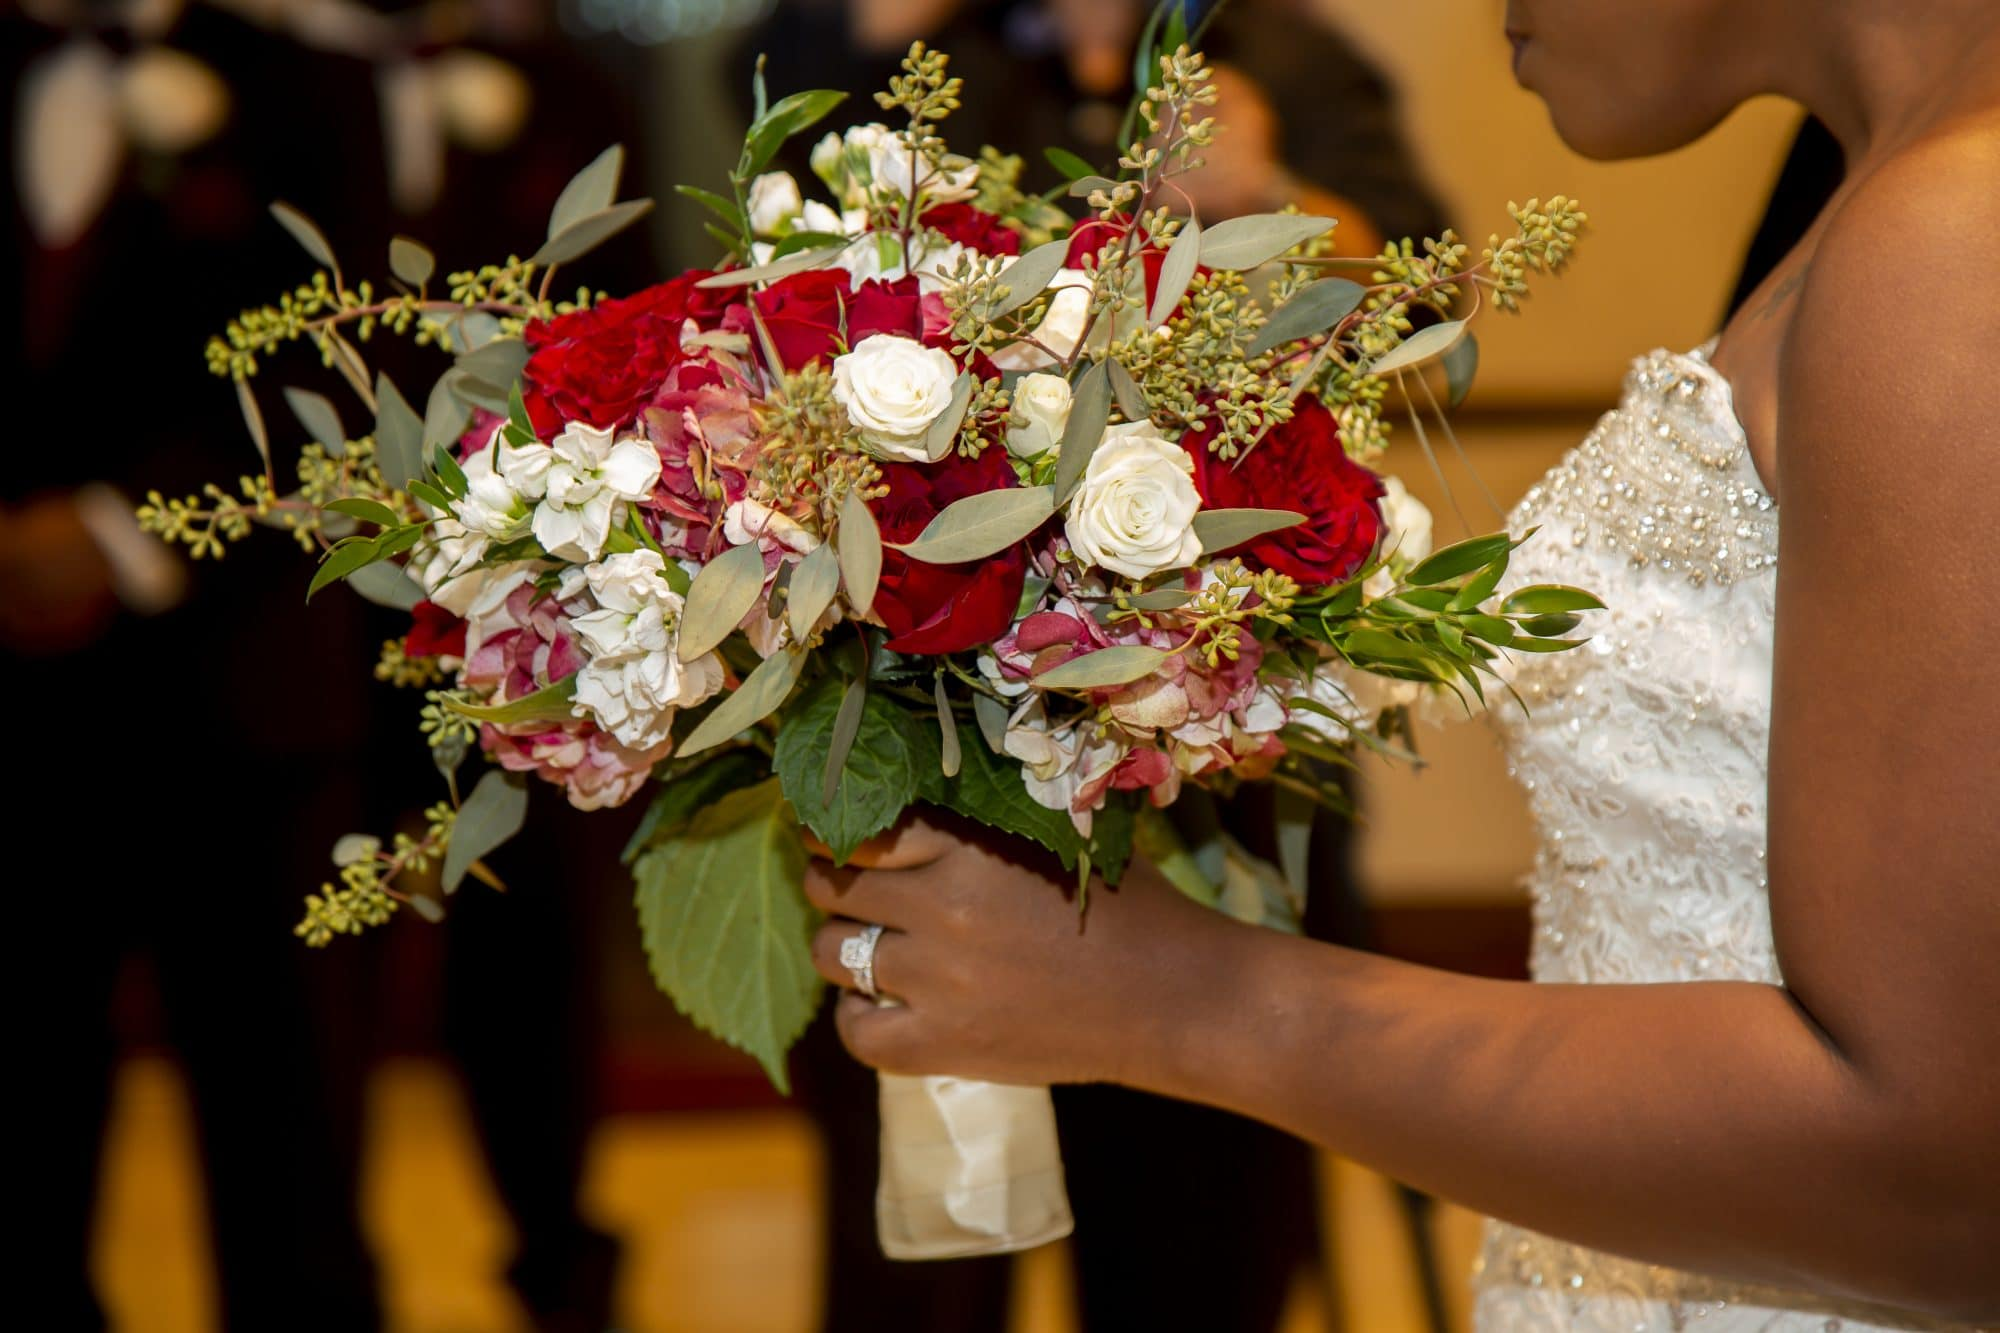 Shaneika holding beautiful white and red bouquet